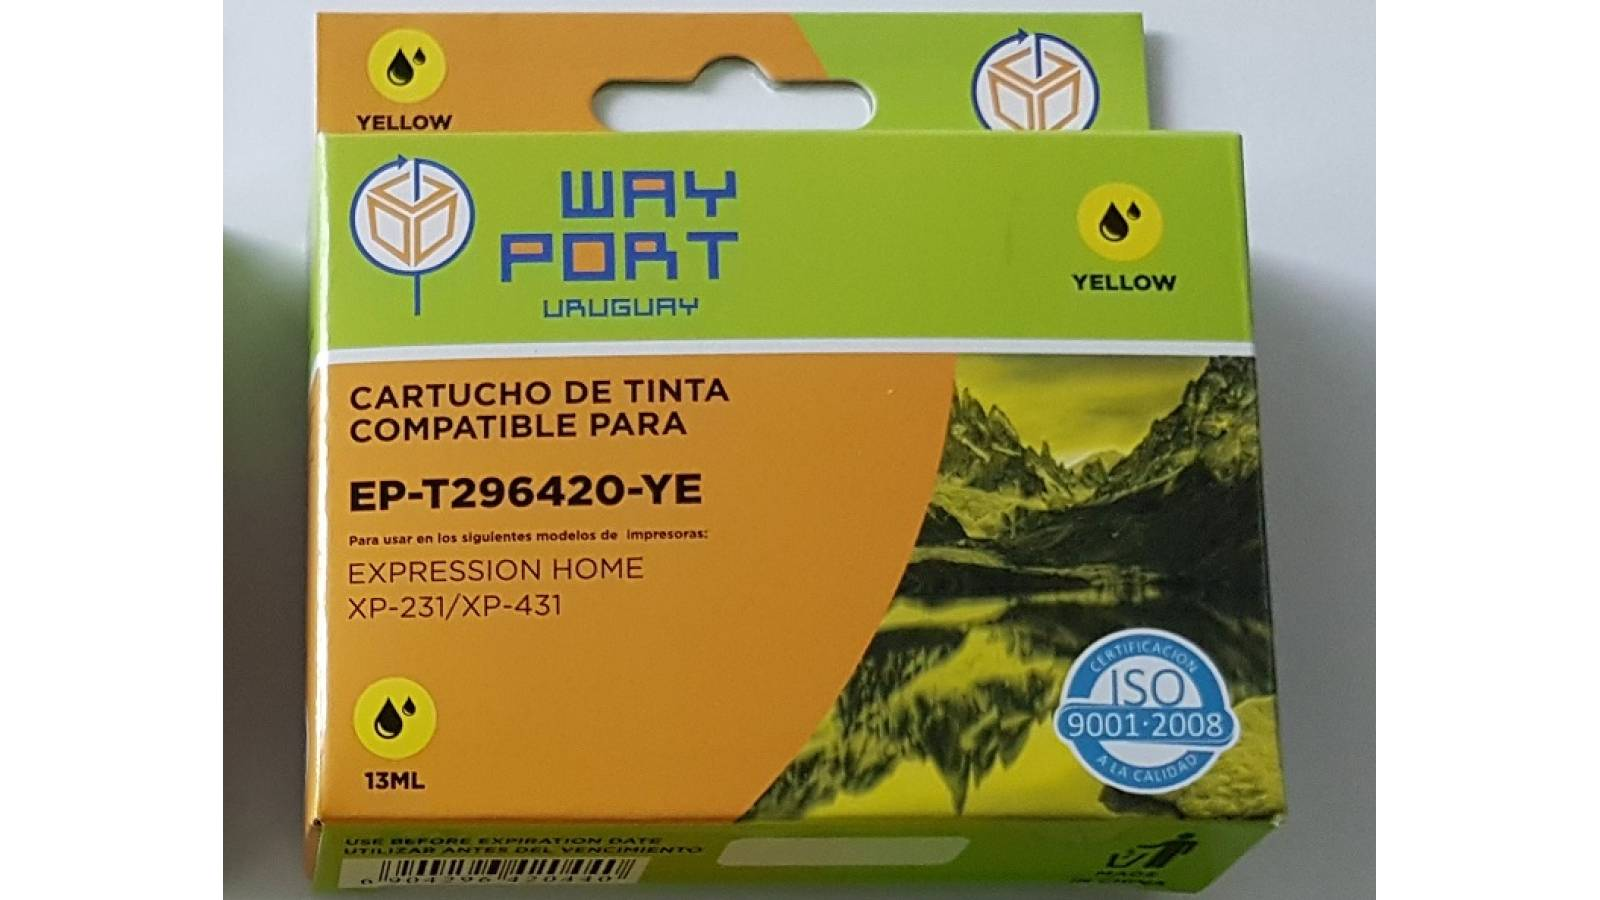 CARTUCHO COMPATIBLE WP PARA EPSON  XP231 / XP431 13ML - AMARILLO